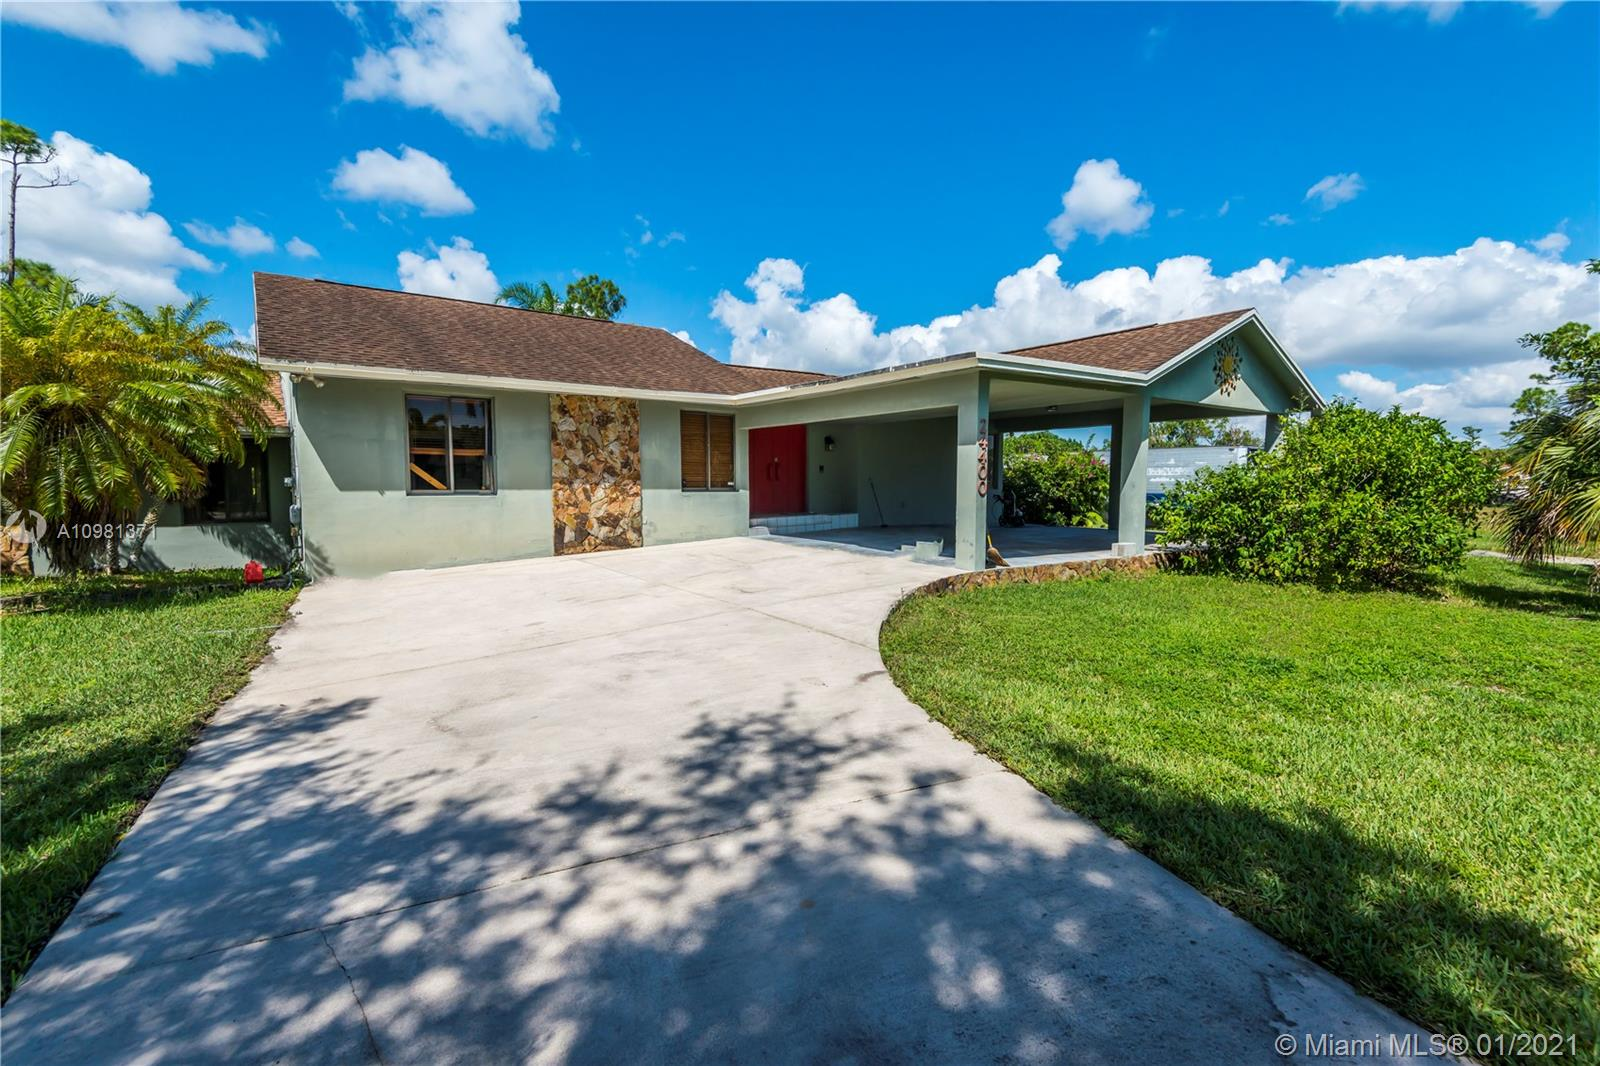 24400 SW 123rd Ave Property Photo - Homestead, FL real estate listing